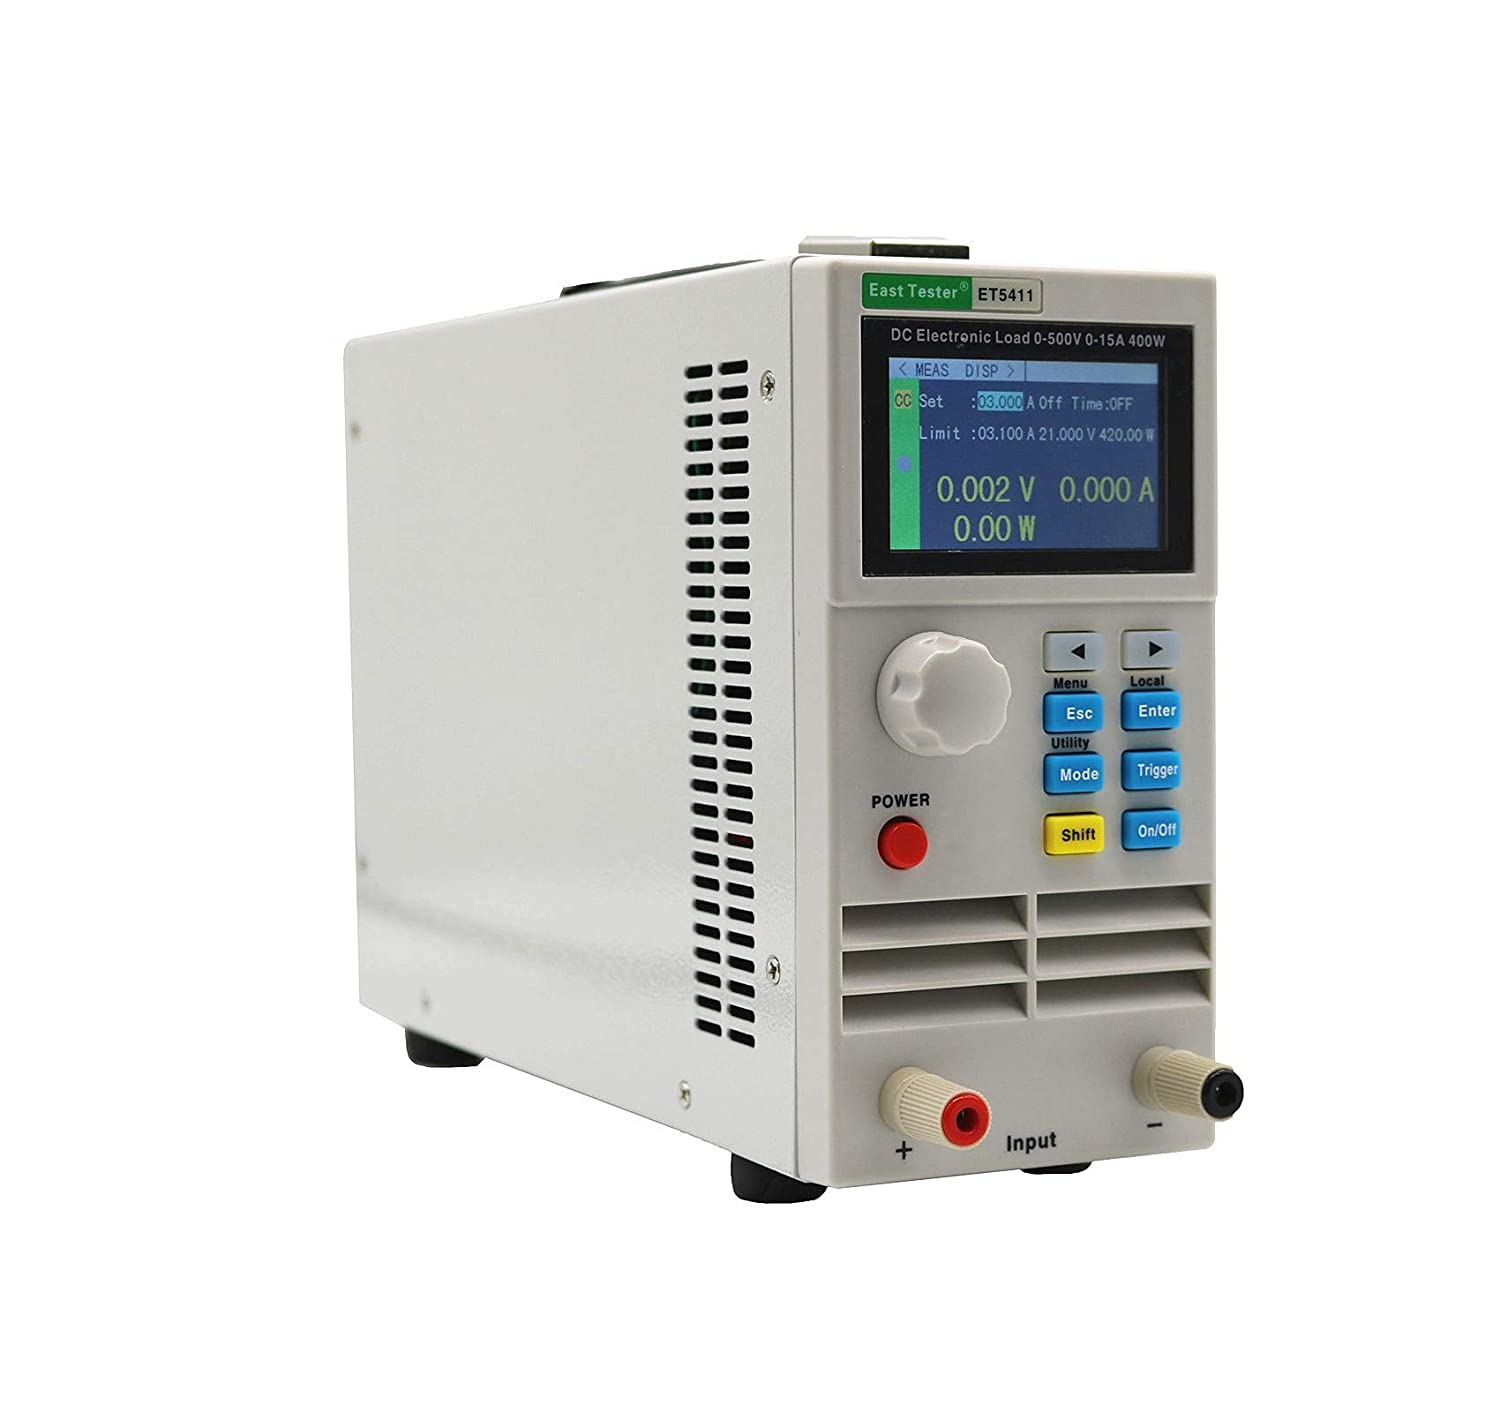 East Tester ET5411 Single-Channel Load Programmable Electronic 4 Spring new work one Limited price sale after another